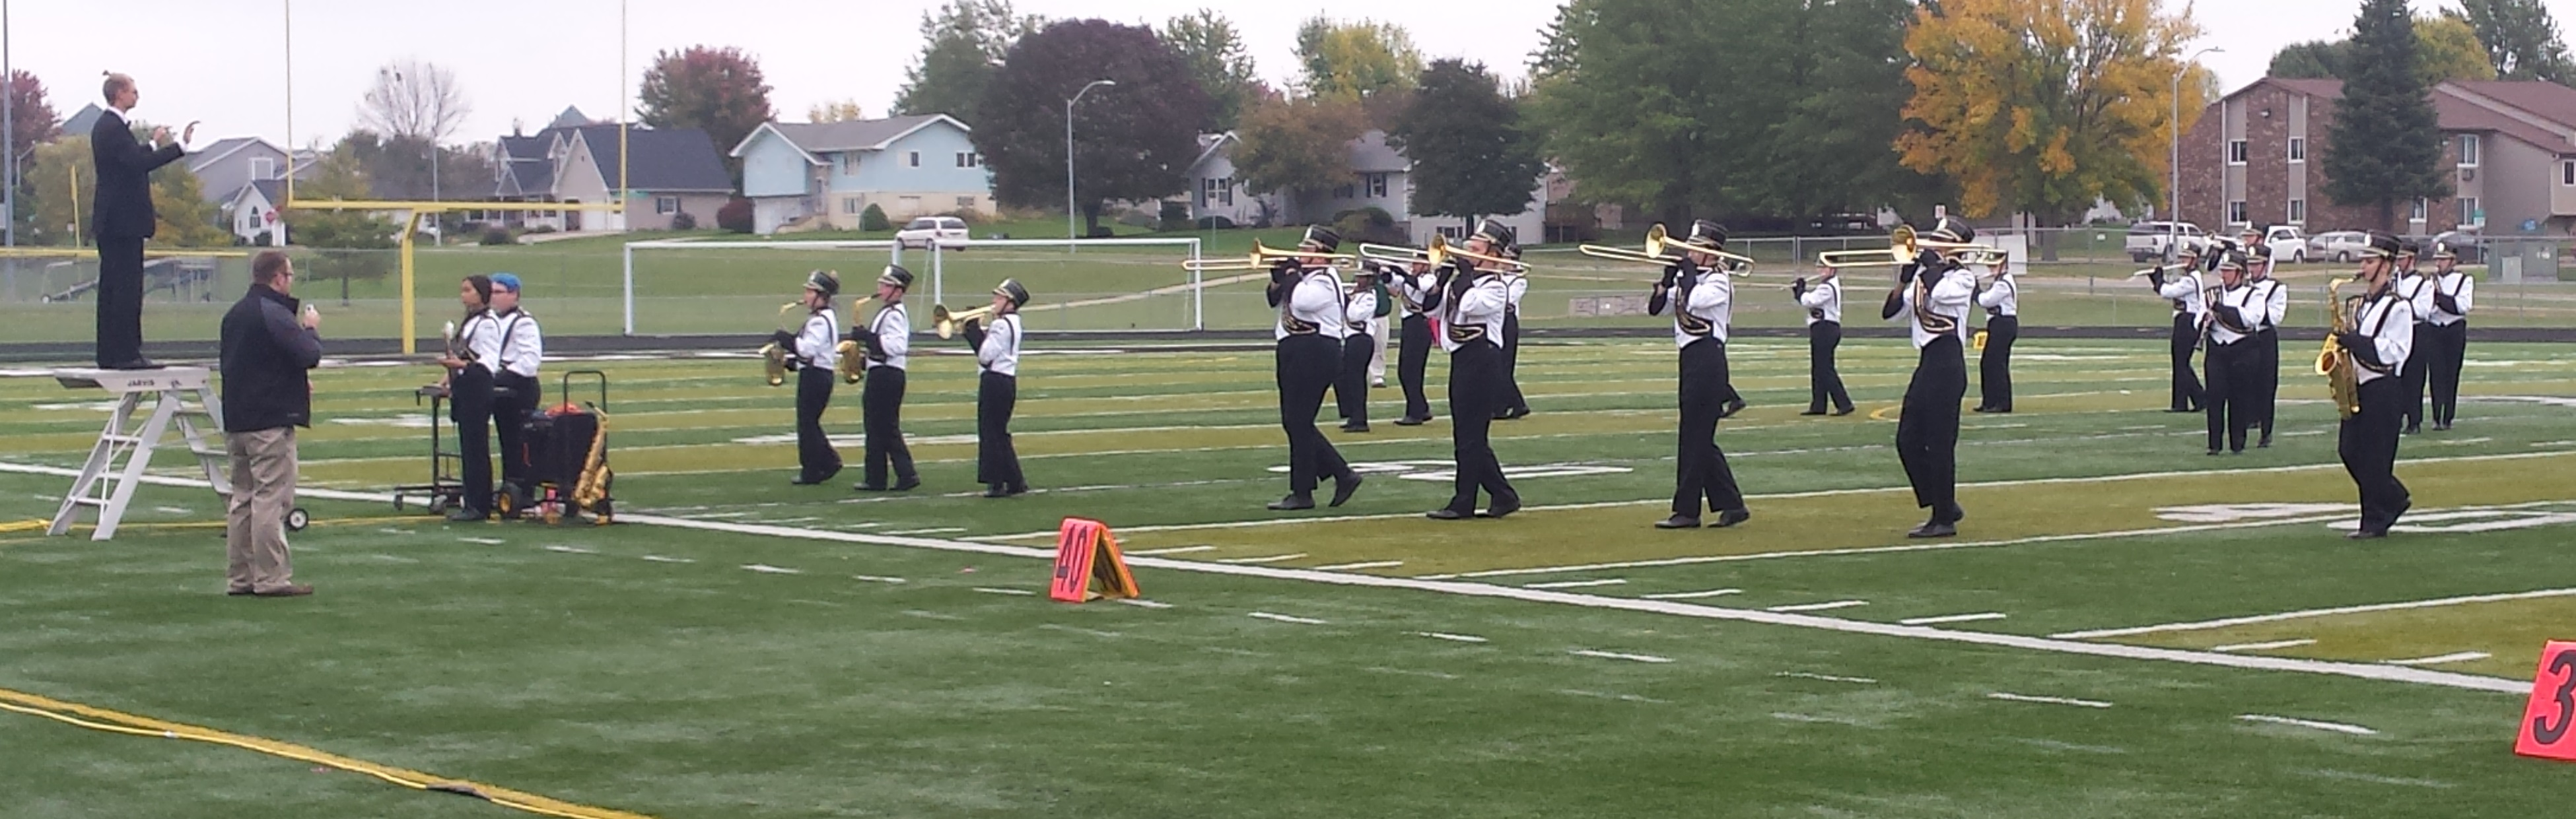 Marching band practices in uniform